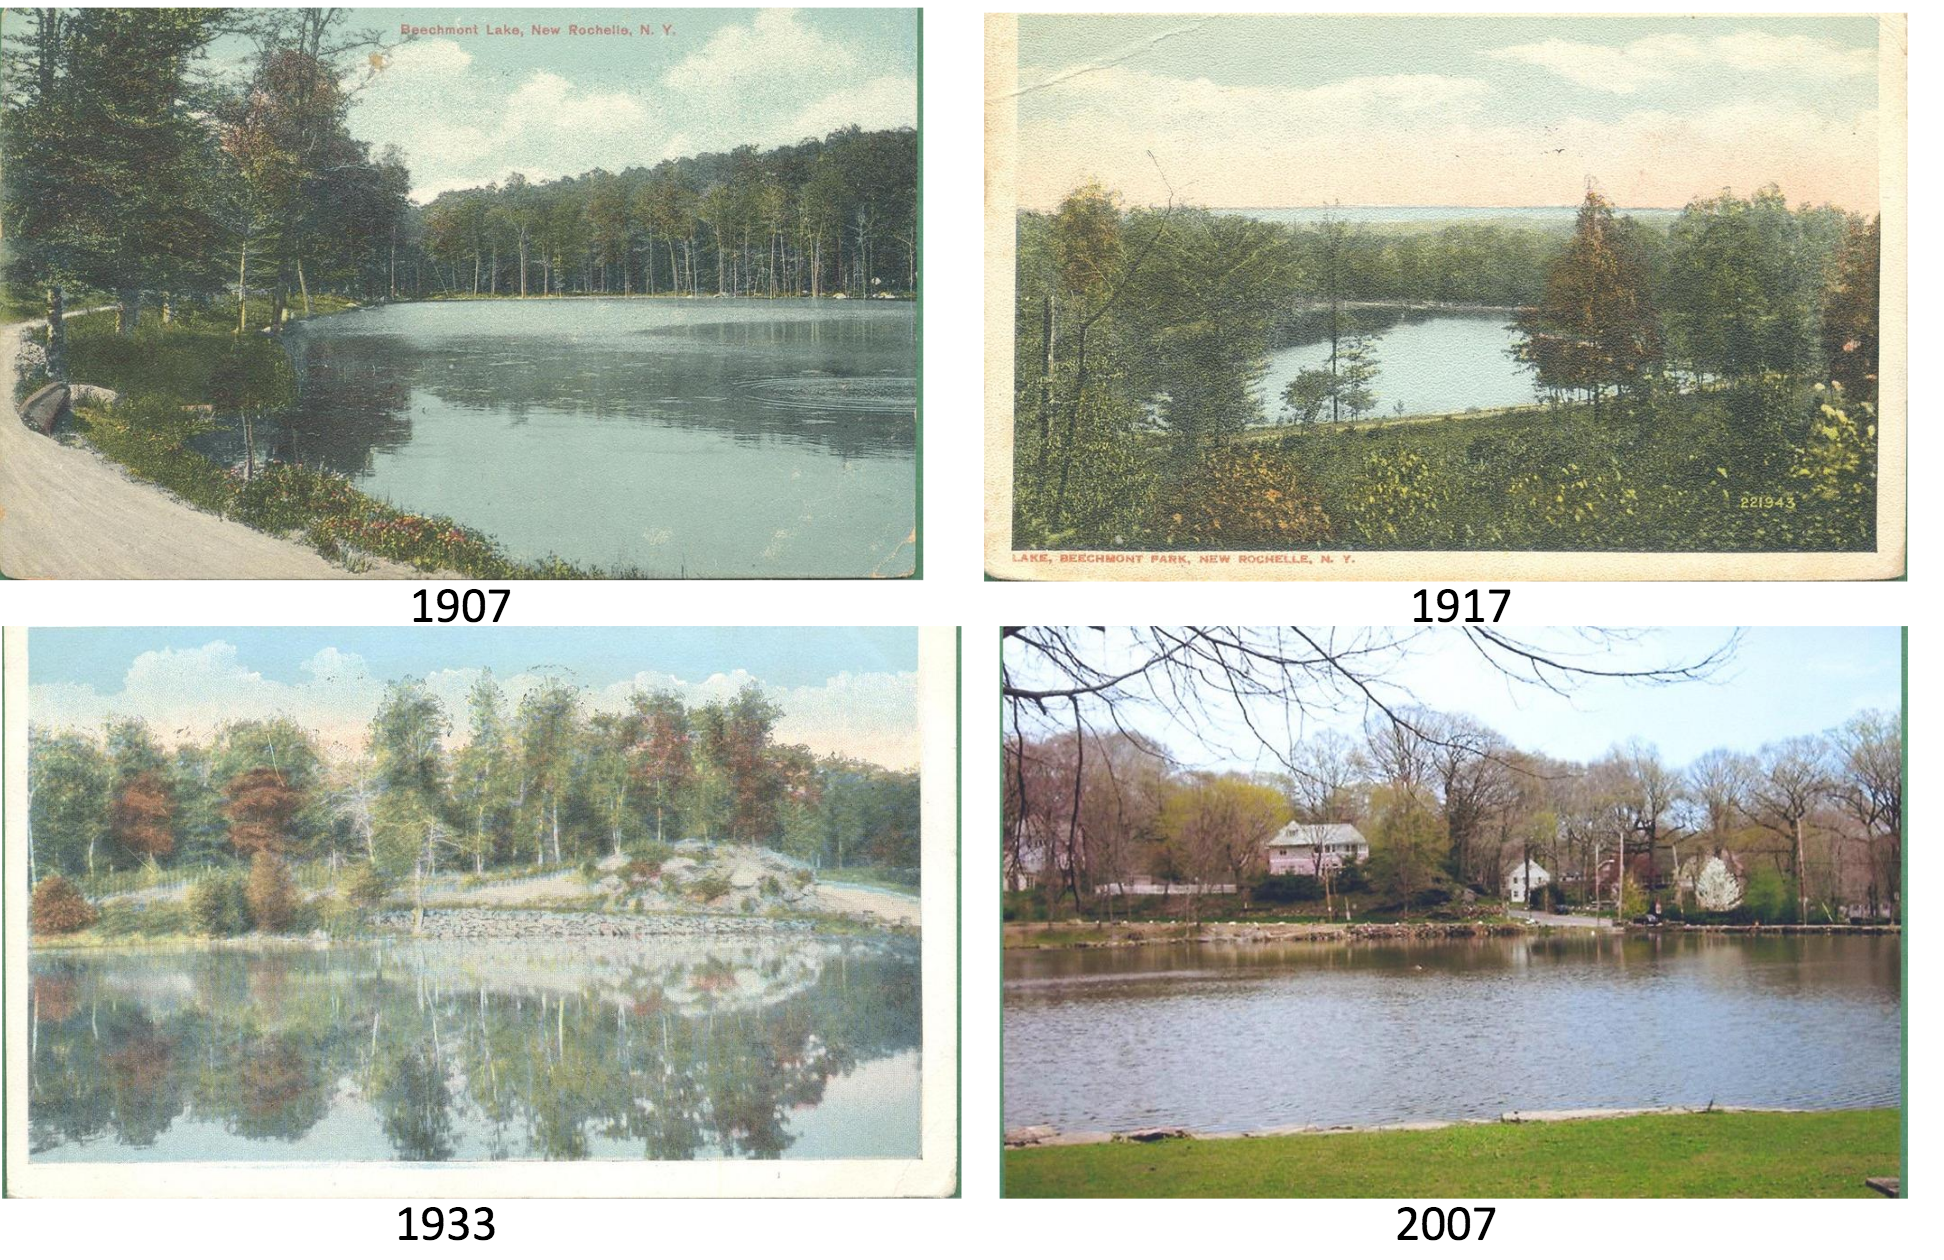 Beechmont Lake Restoration In New Rochelle In Spring Theloop